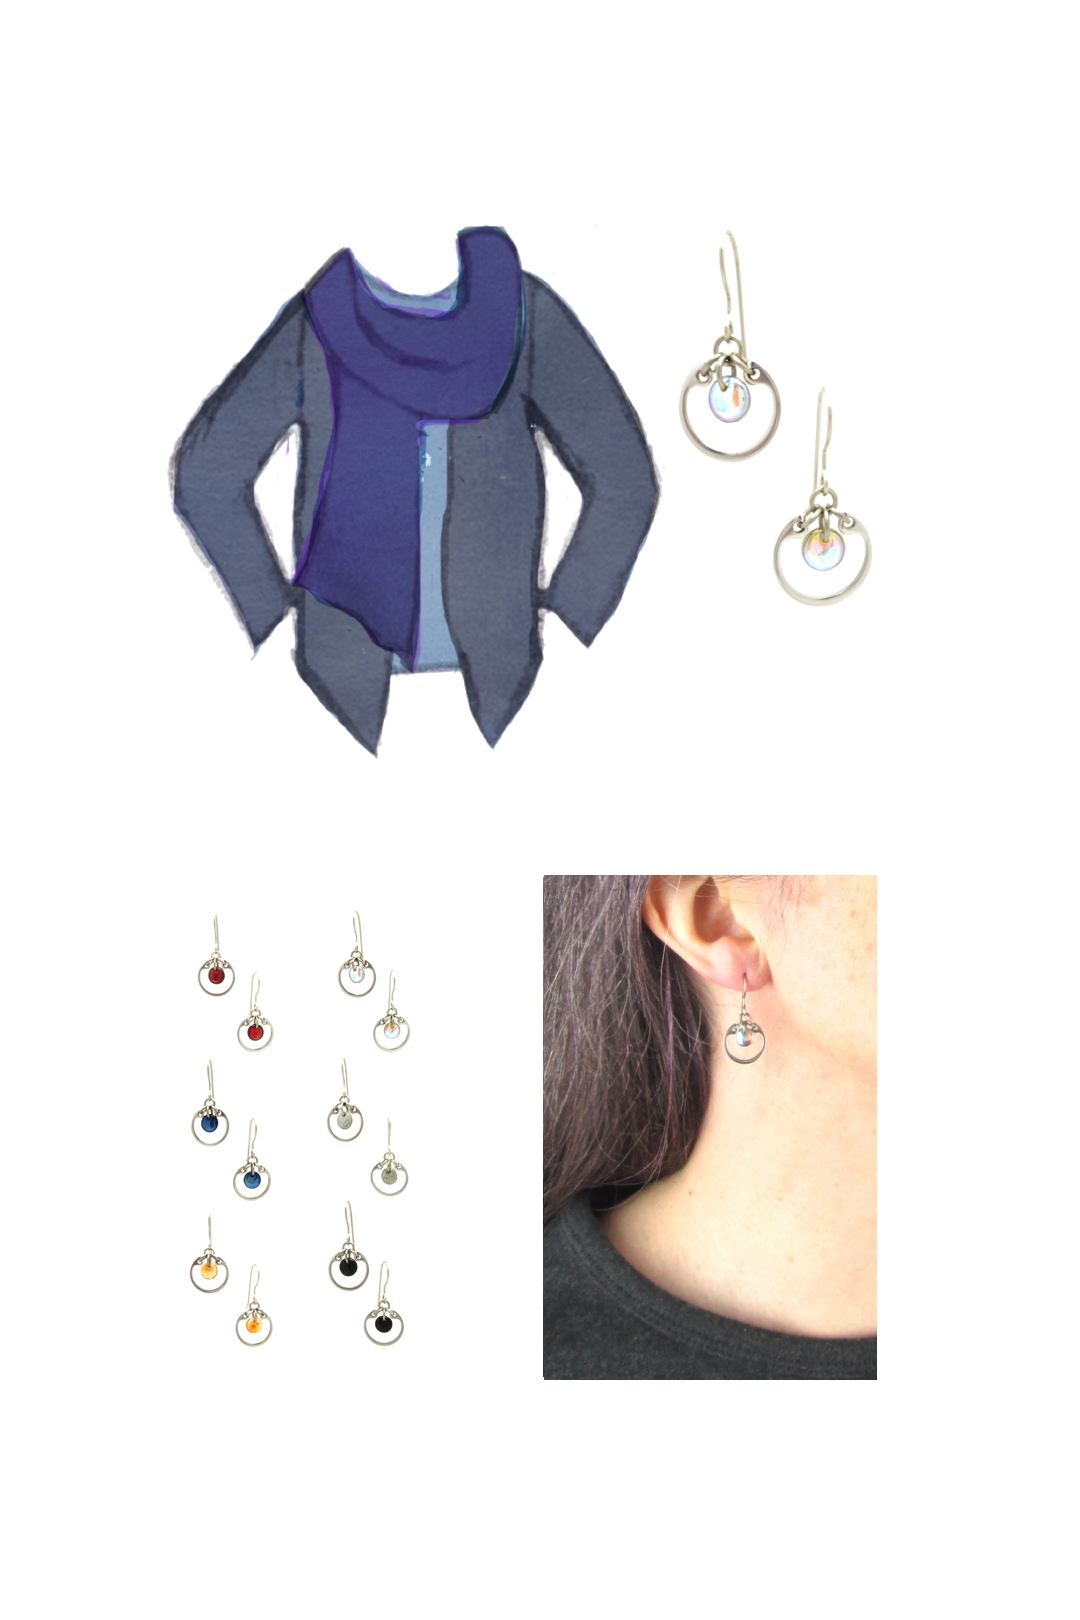 Compiled image with a style sketch of an outfit idea in shades of blue, with a pale blue tee, violet blue scarf, & dusty indigo cardigan, with Wraptillion's small modern circle earrings in pale rainbow, a closeup modeled photo of the same earrings, and additional color choices for the small circle earrings.